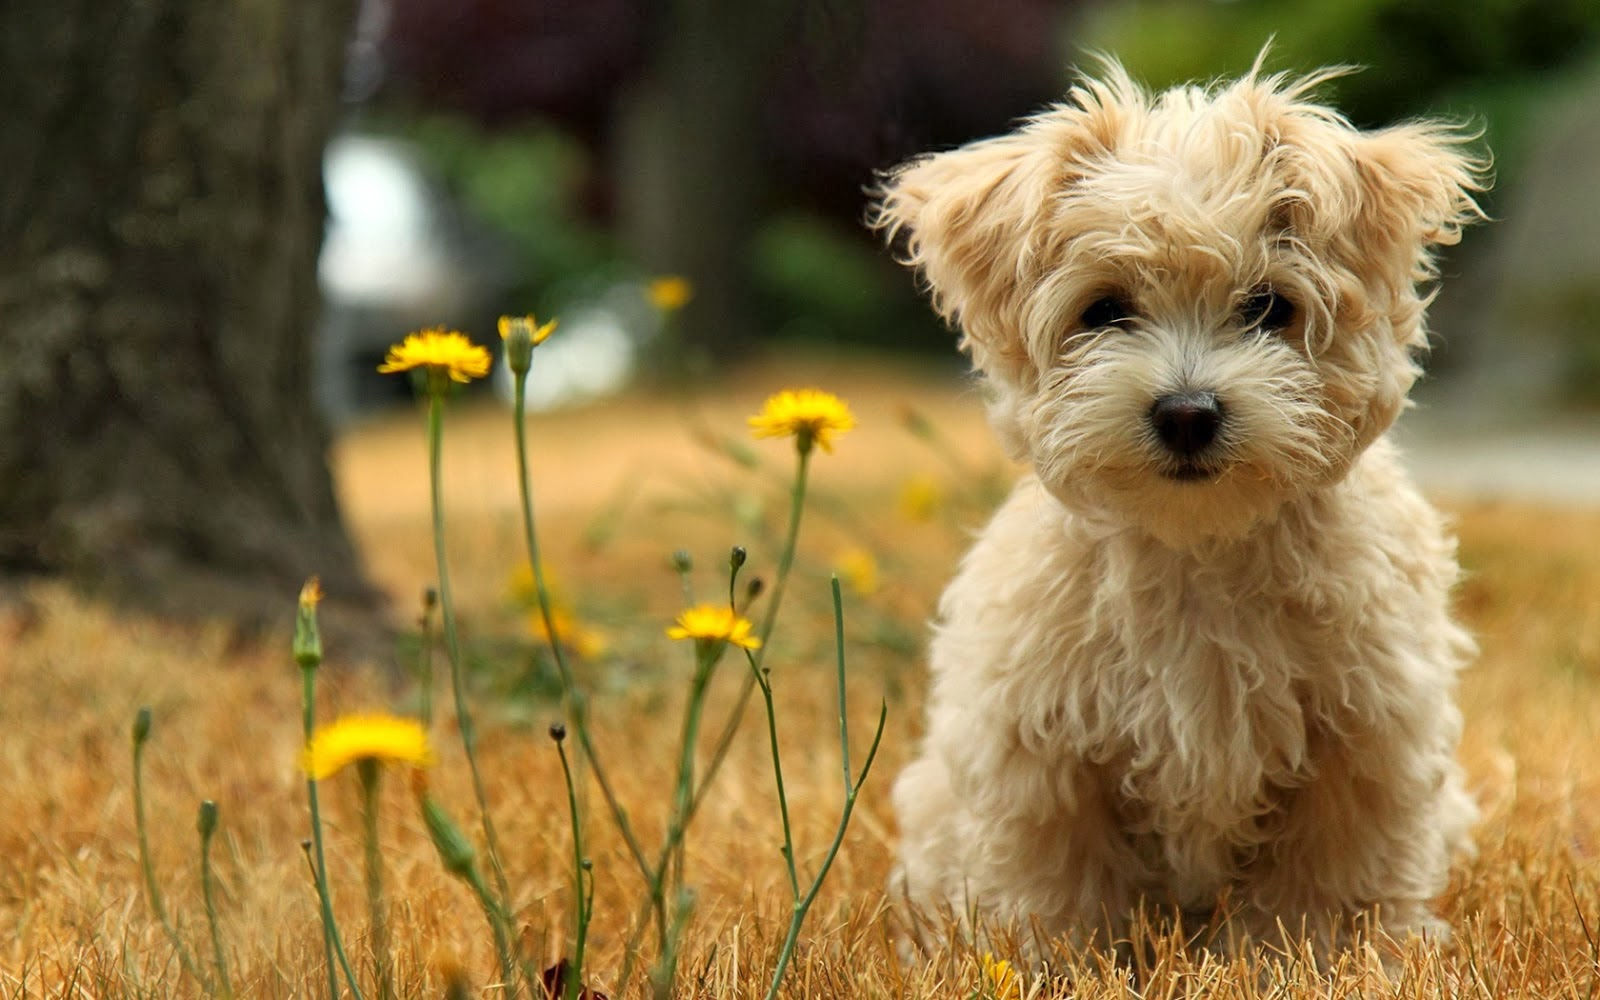 Cute puppies hd wallpapers hd wallpapers blog for Pictures of cute dogs